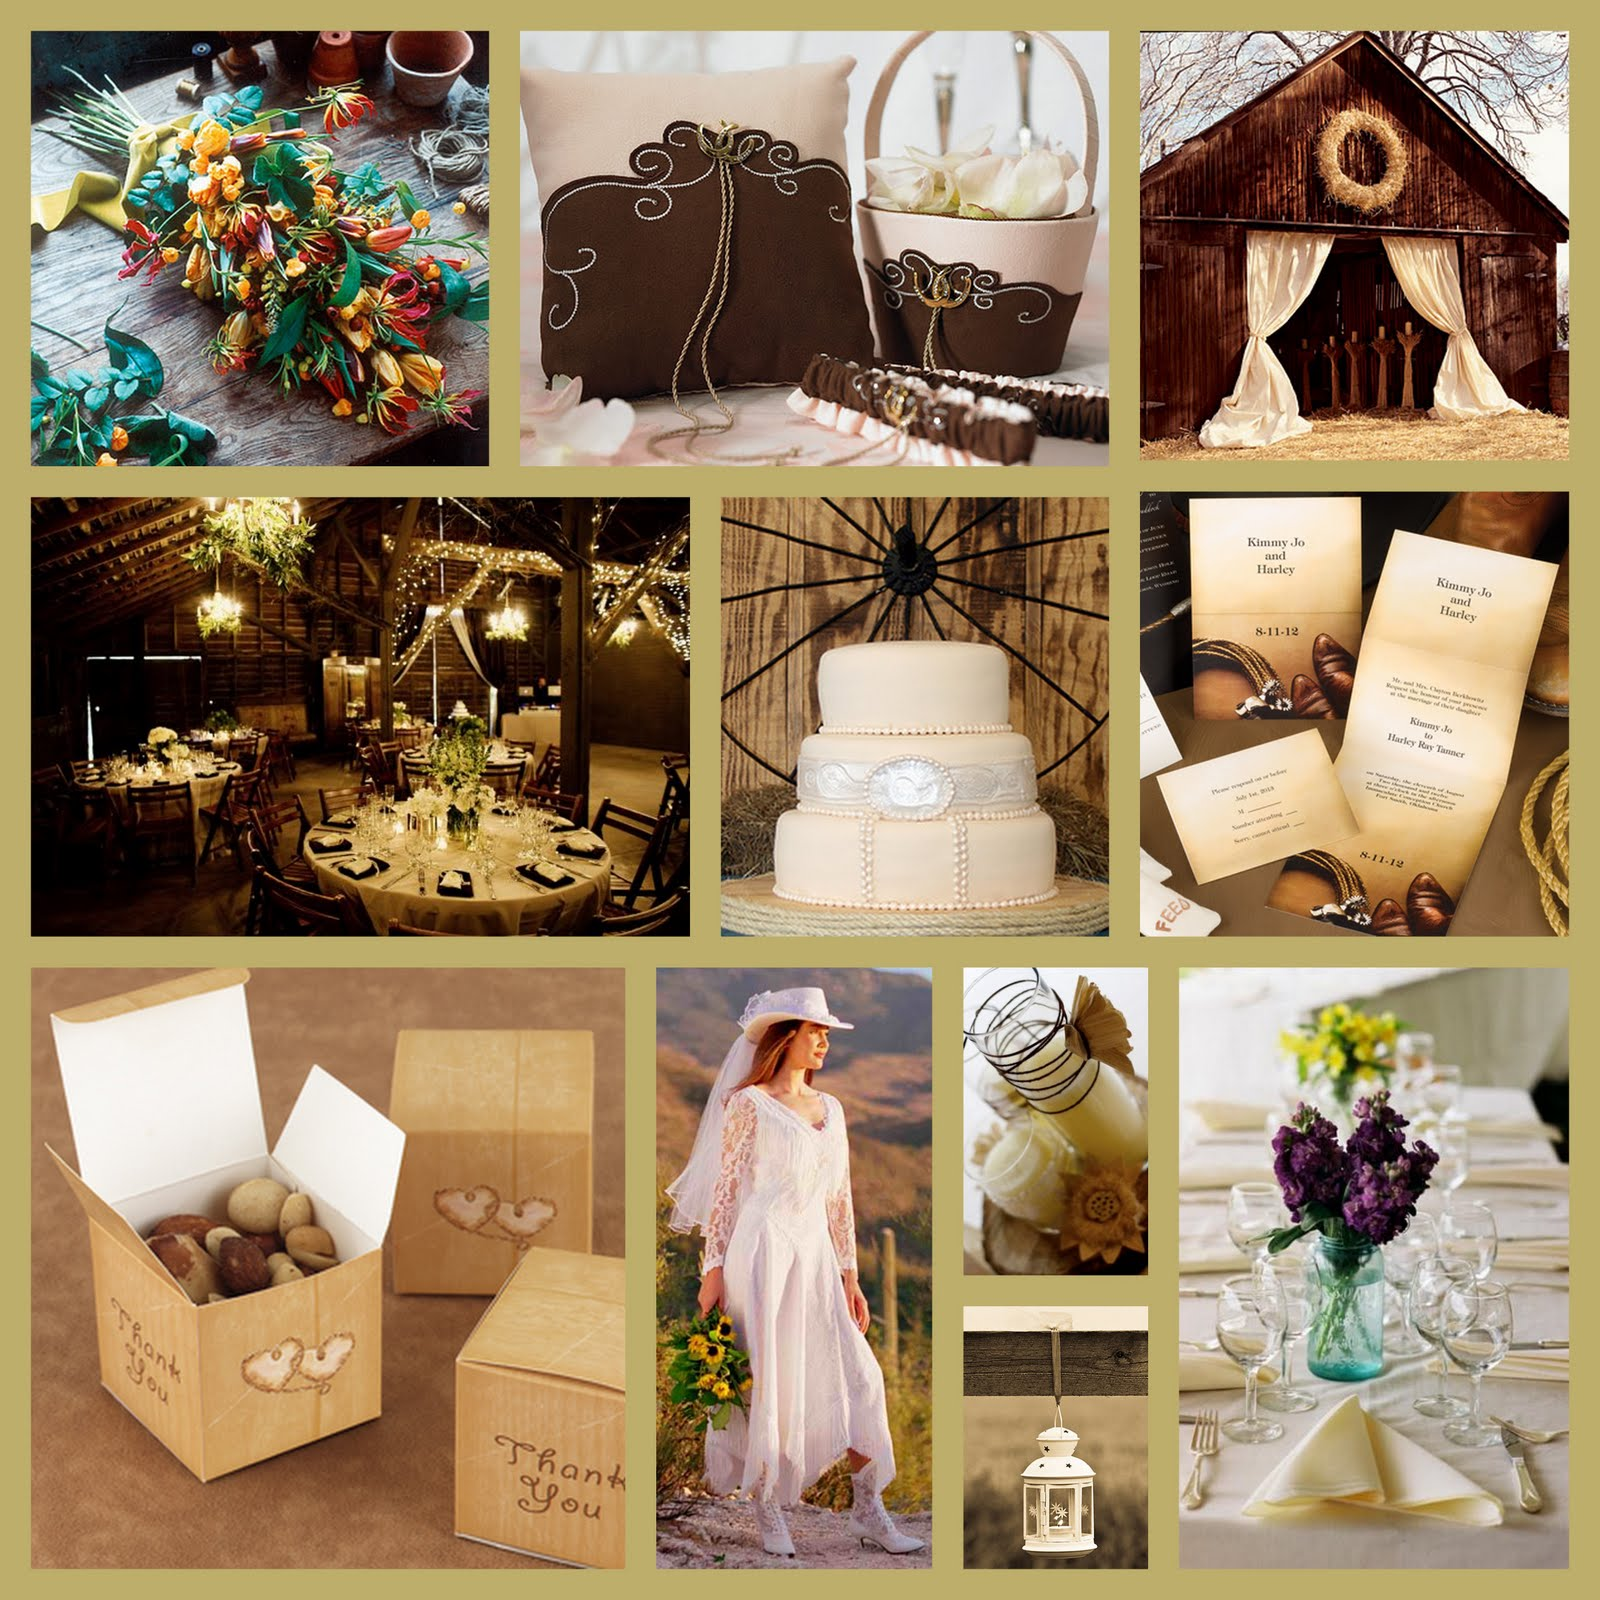 Premier bride magazine texas wedding theme western for Country wedding reception decorations